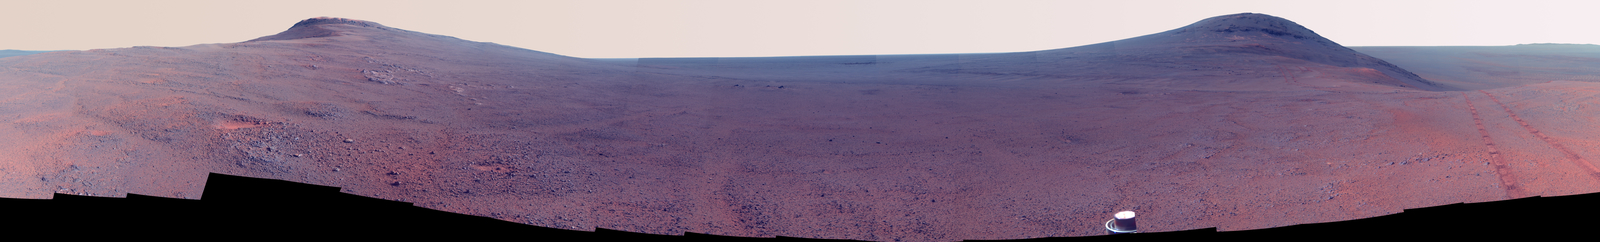 "This June 2017 view  from the Pancam on NASA's Opportunity Mars rover shows the area just above  ""Perseverance Valley"" on the western rim of Endeavour Crater. Color  has been enhanced to make differences in surface materials more easily."